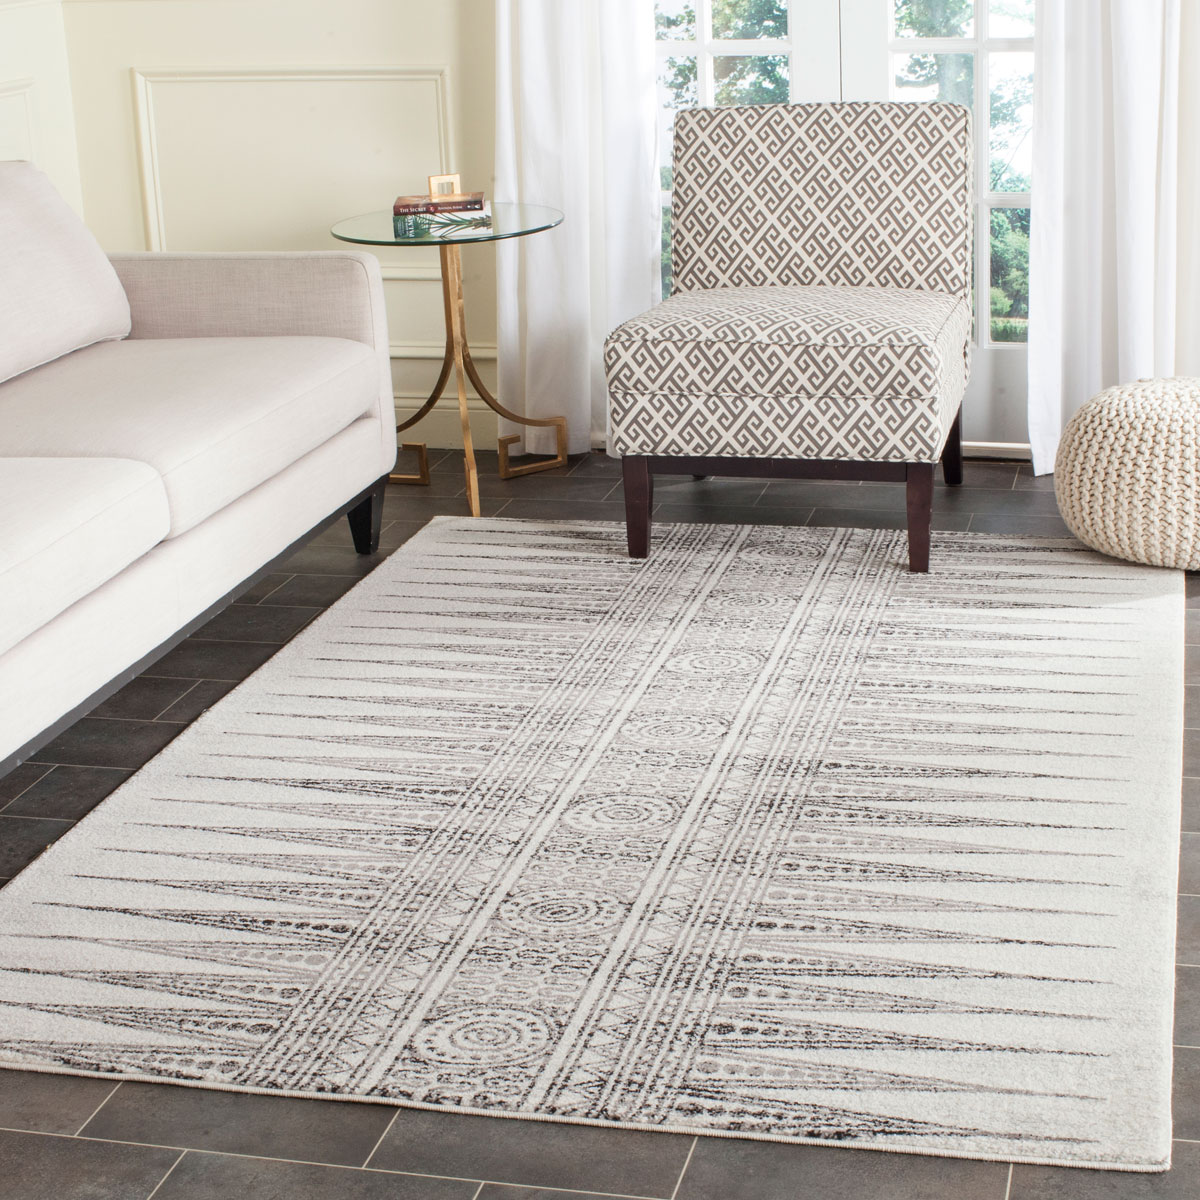 trellis moroccan by area dining dp vintage kitchen x feet rug amazon inches traditional com grey rugs